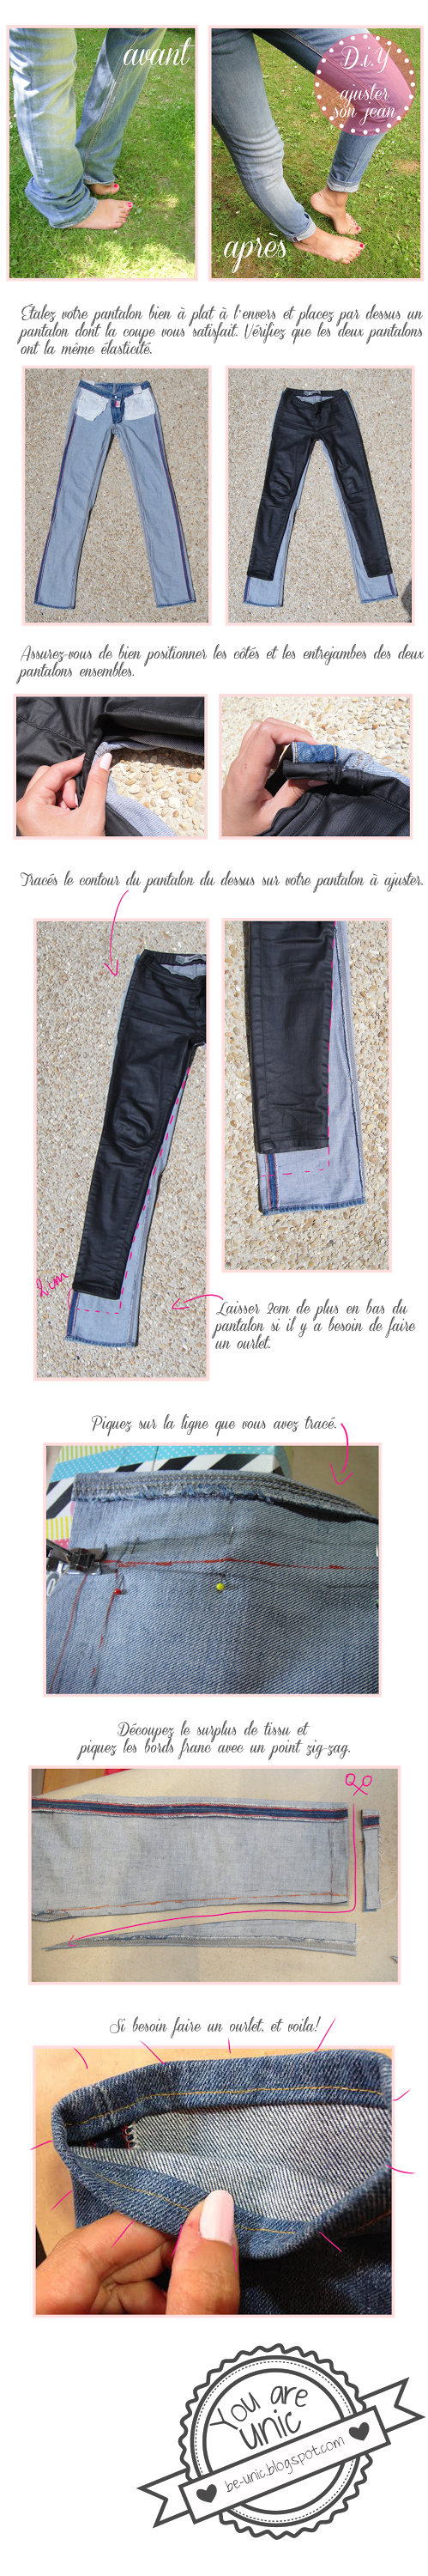 Be Unic: D.I.Y # 13 - Ajuster Son Jean | Sewing | Pinterest ...